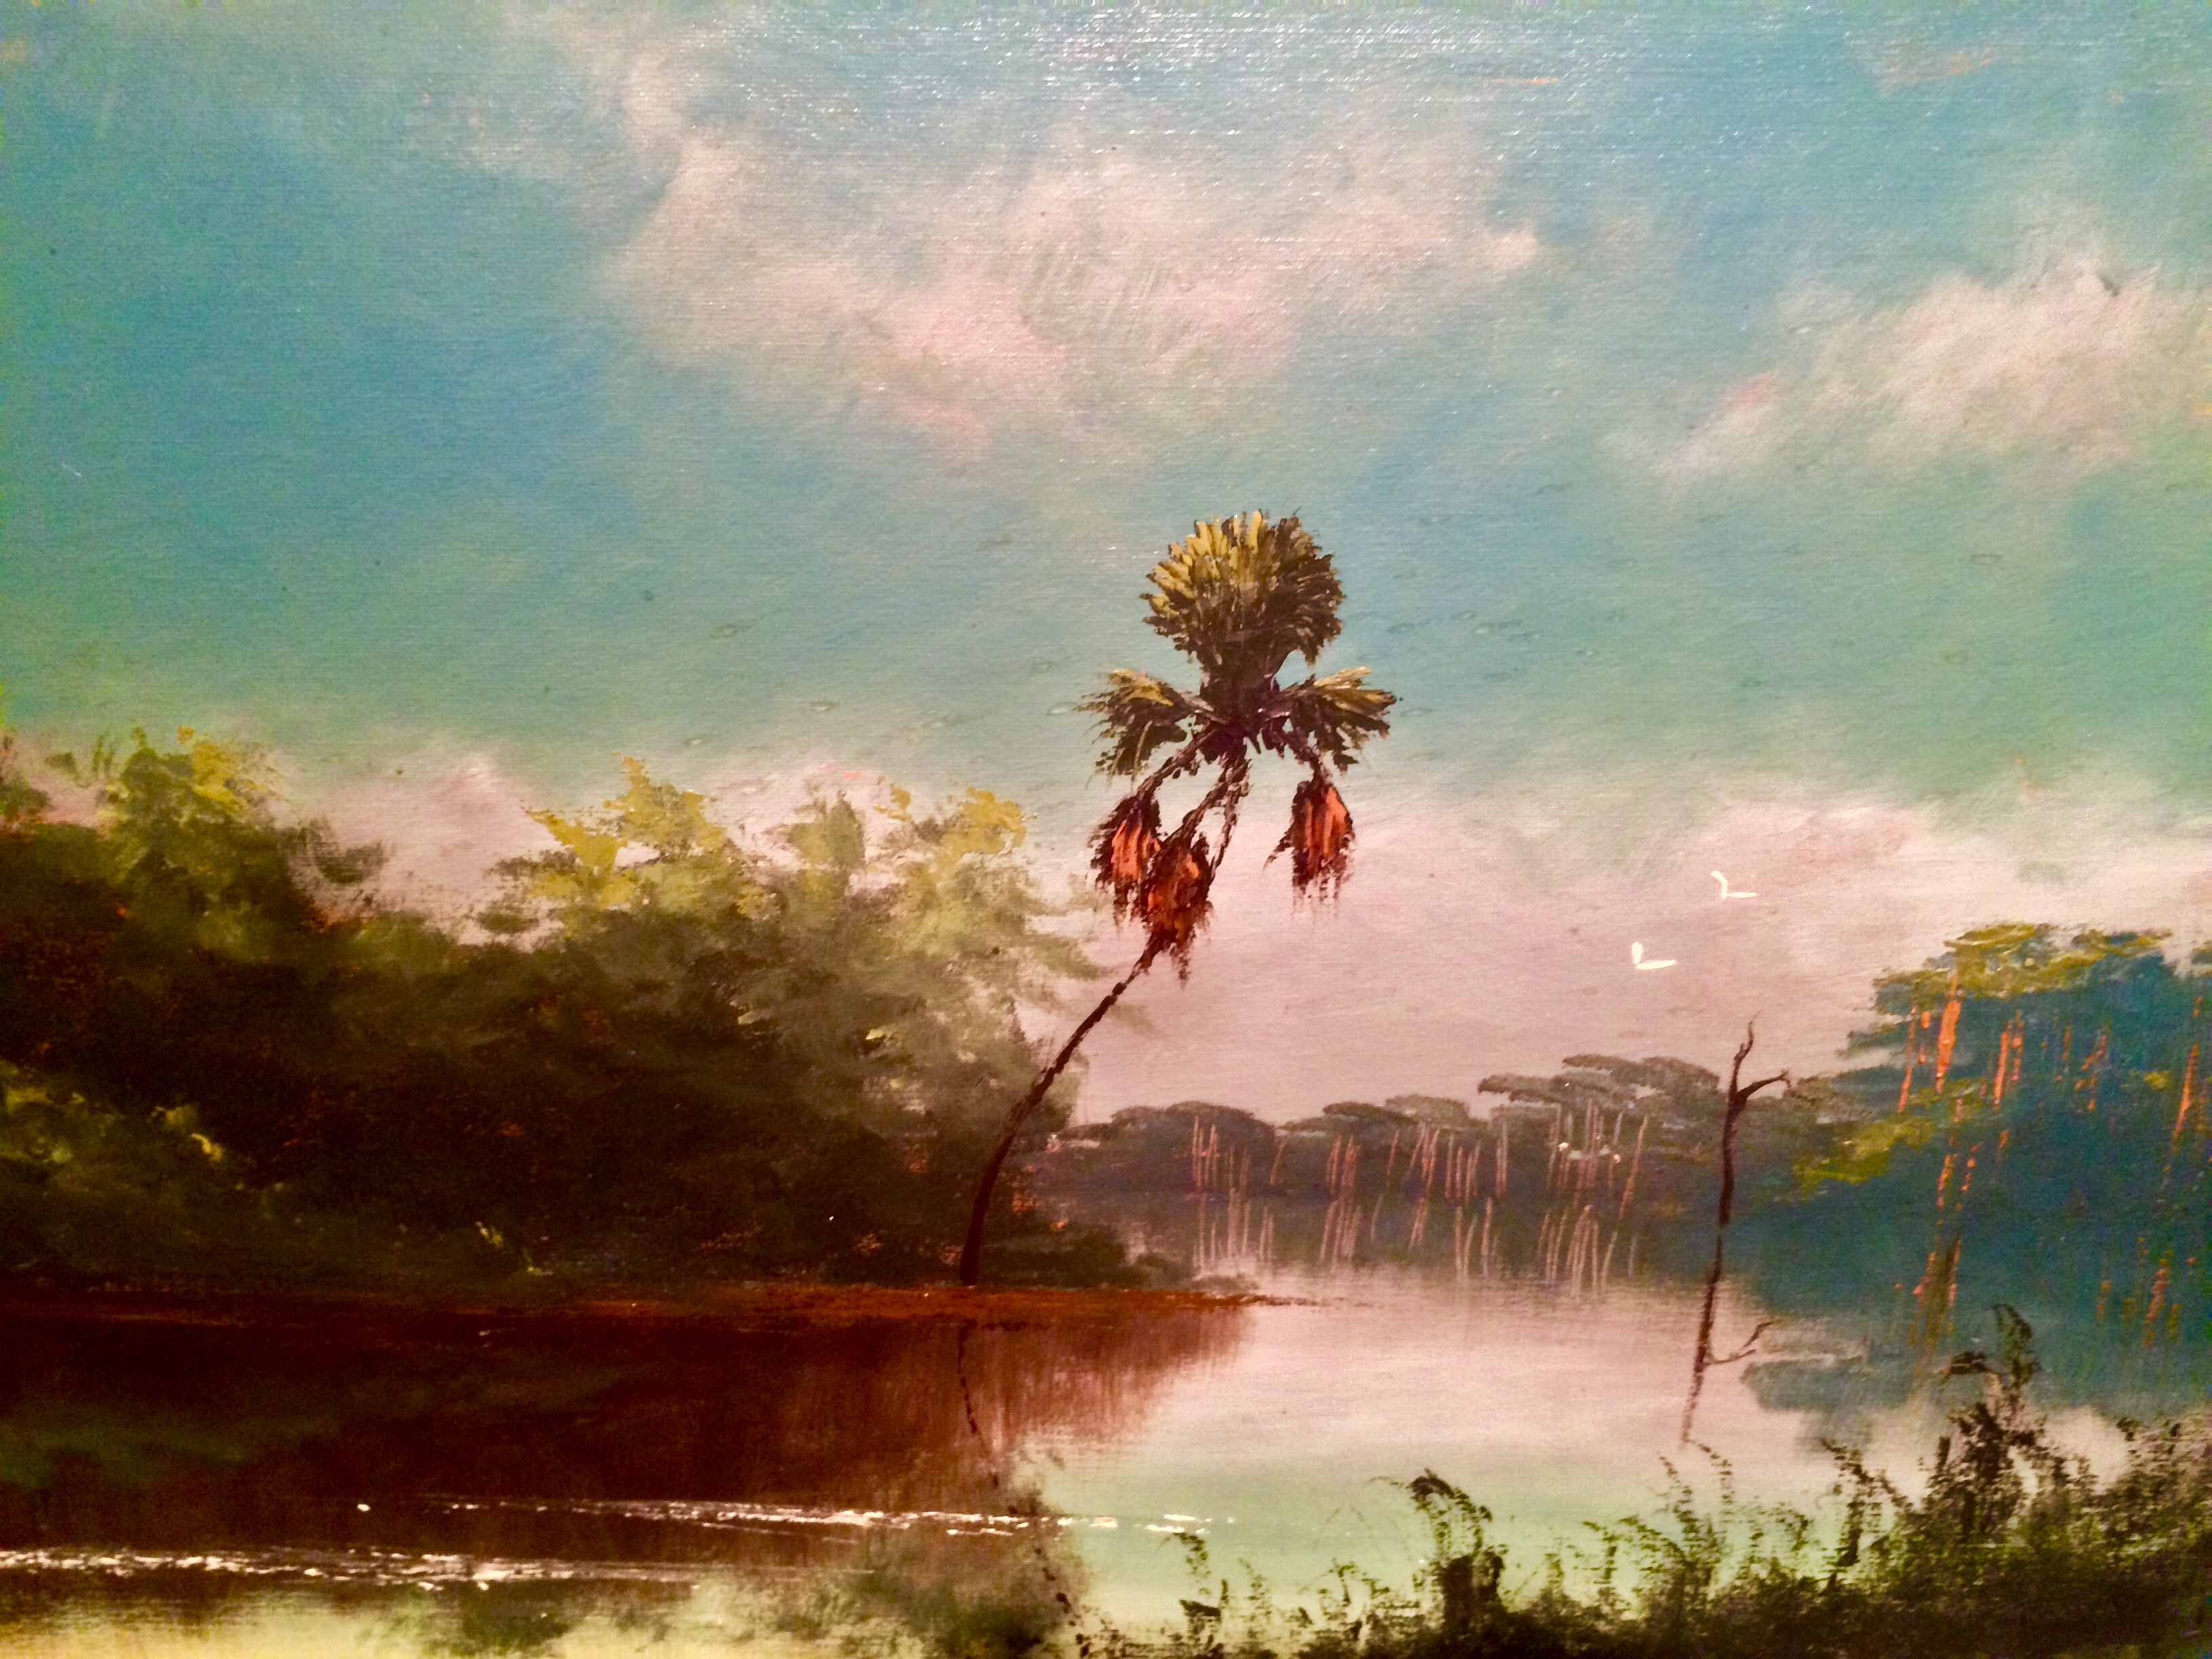 Florida Highwaymen in Windsor, Canada